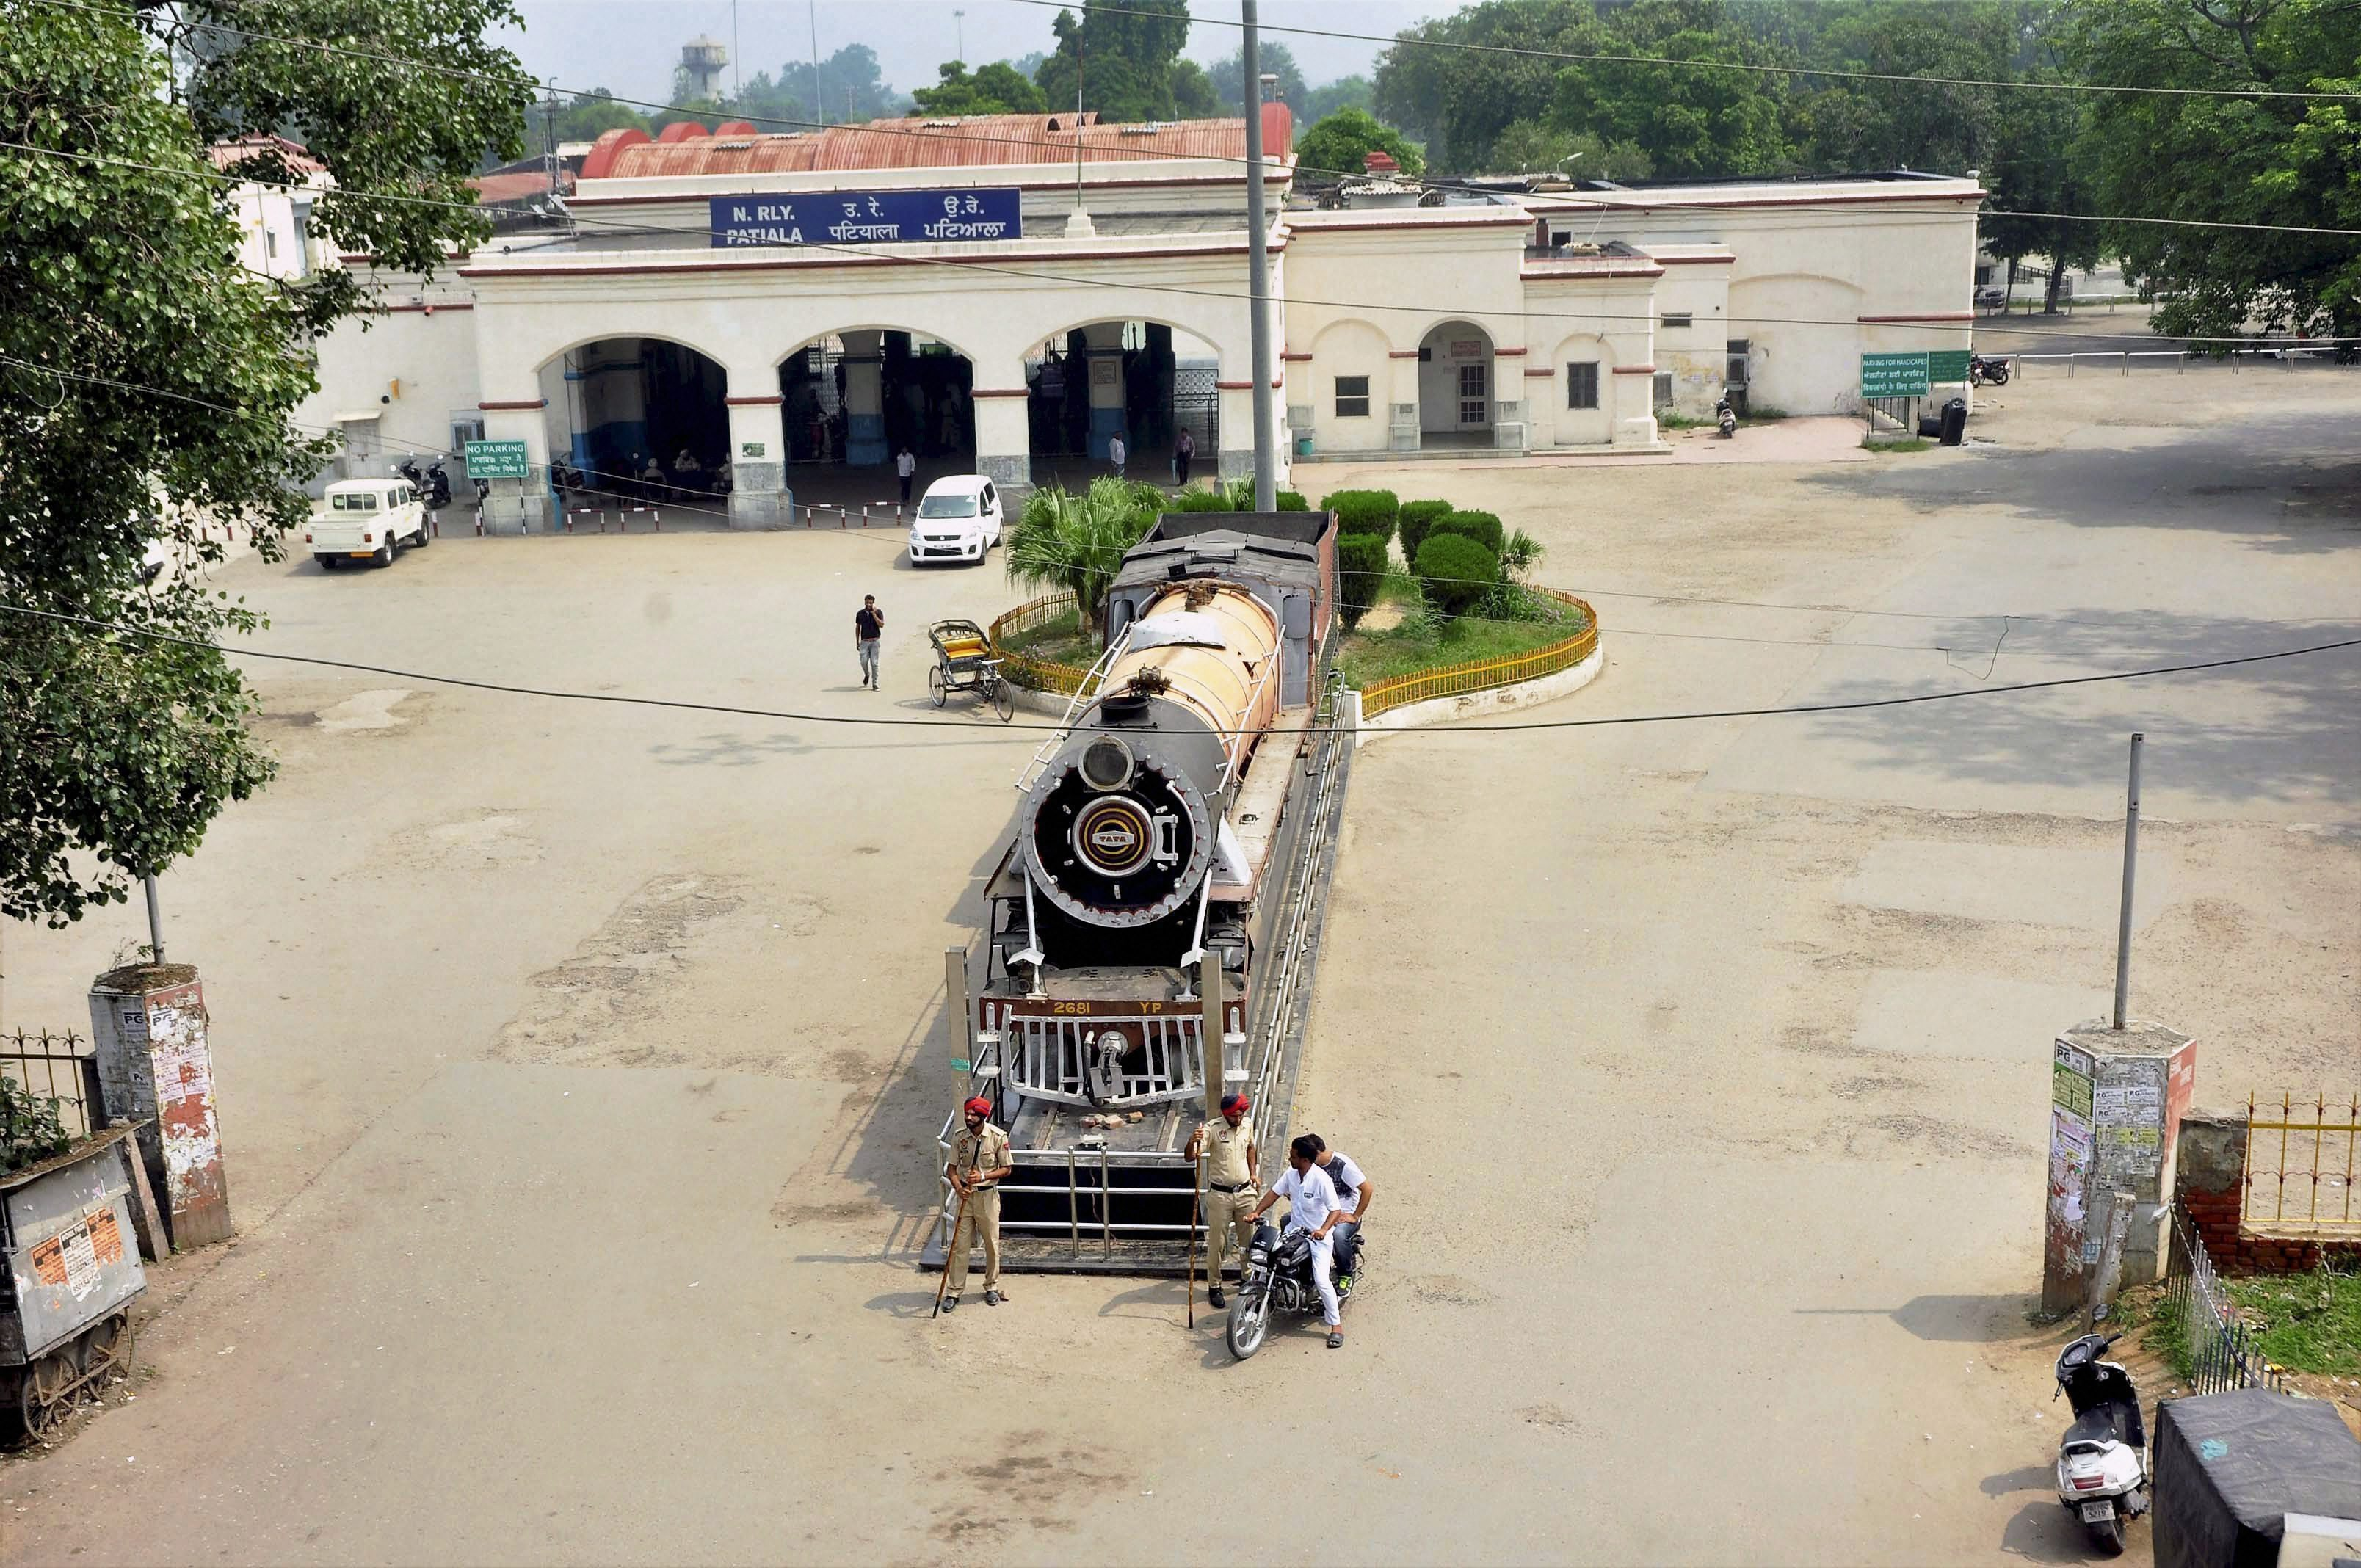 Patiala: Patiala railway station wears a deserted look on Friday as several trains were cancelled due to apprehensions of unrest in view of a verdict in a case against Dera Sacha Sauda chief Gurmeet Ram Rahim Singh. PTI Photo(PTI8_25_2017_000073A)